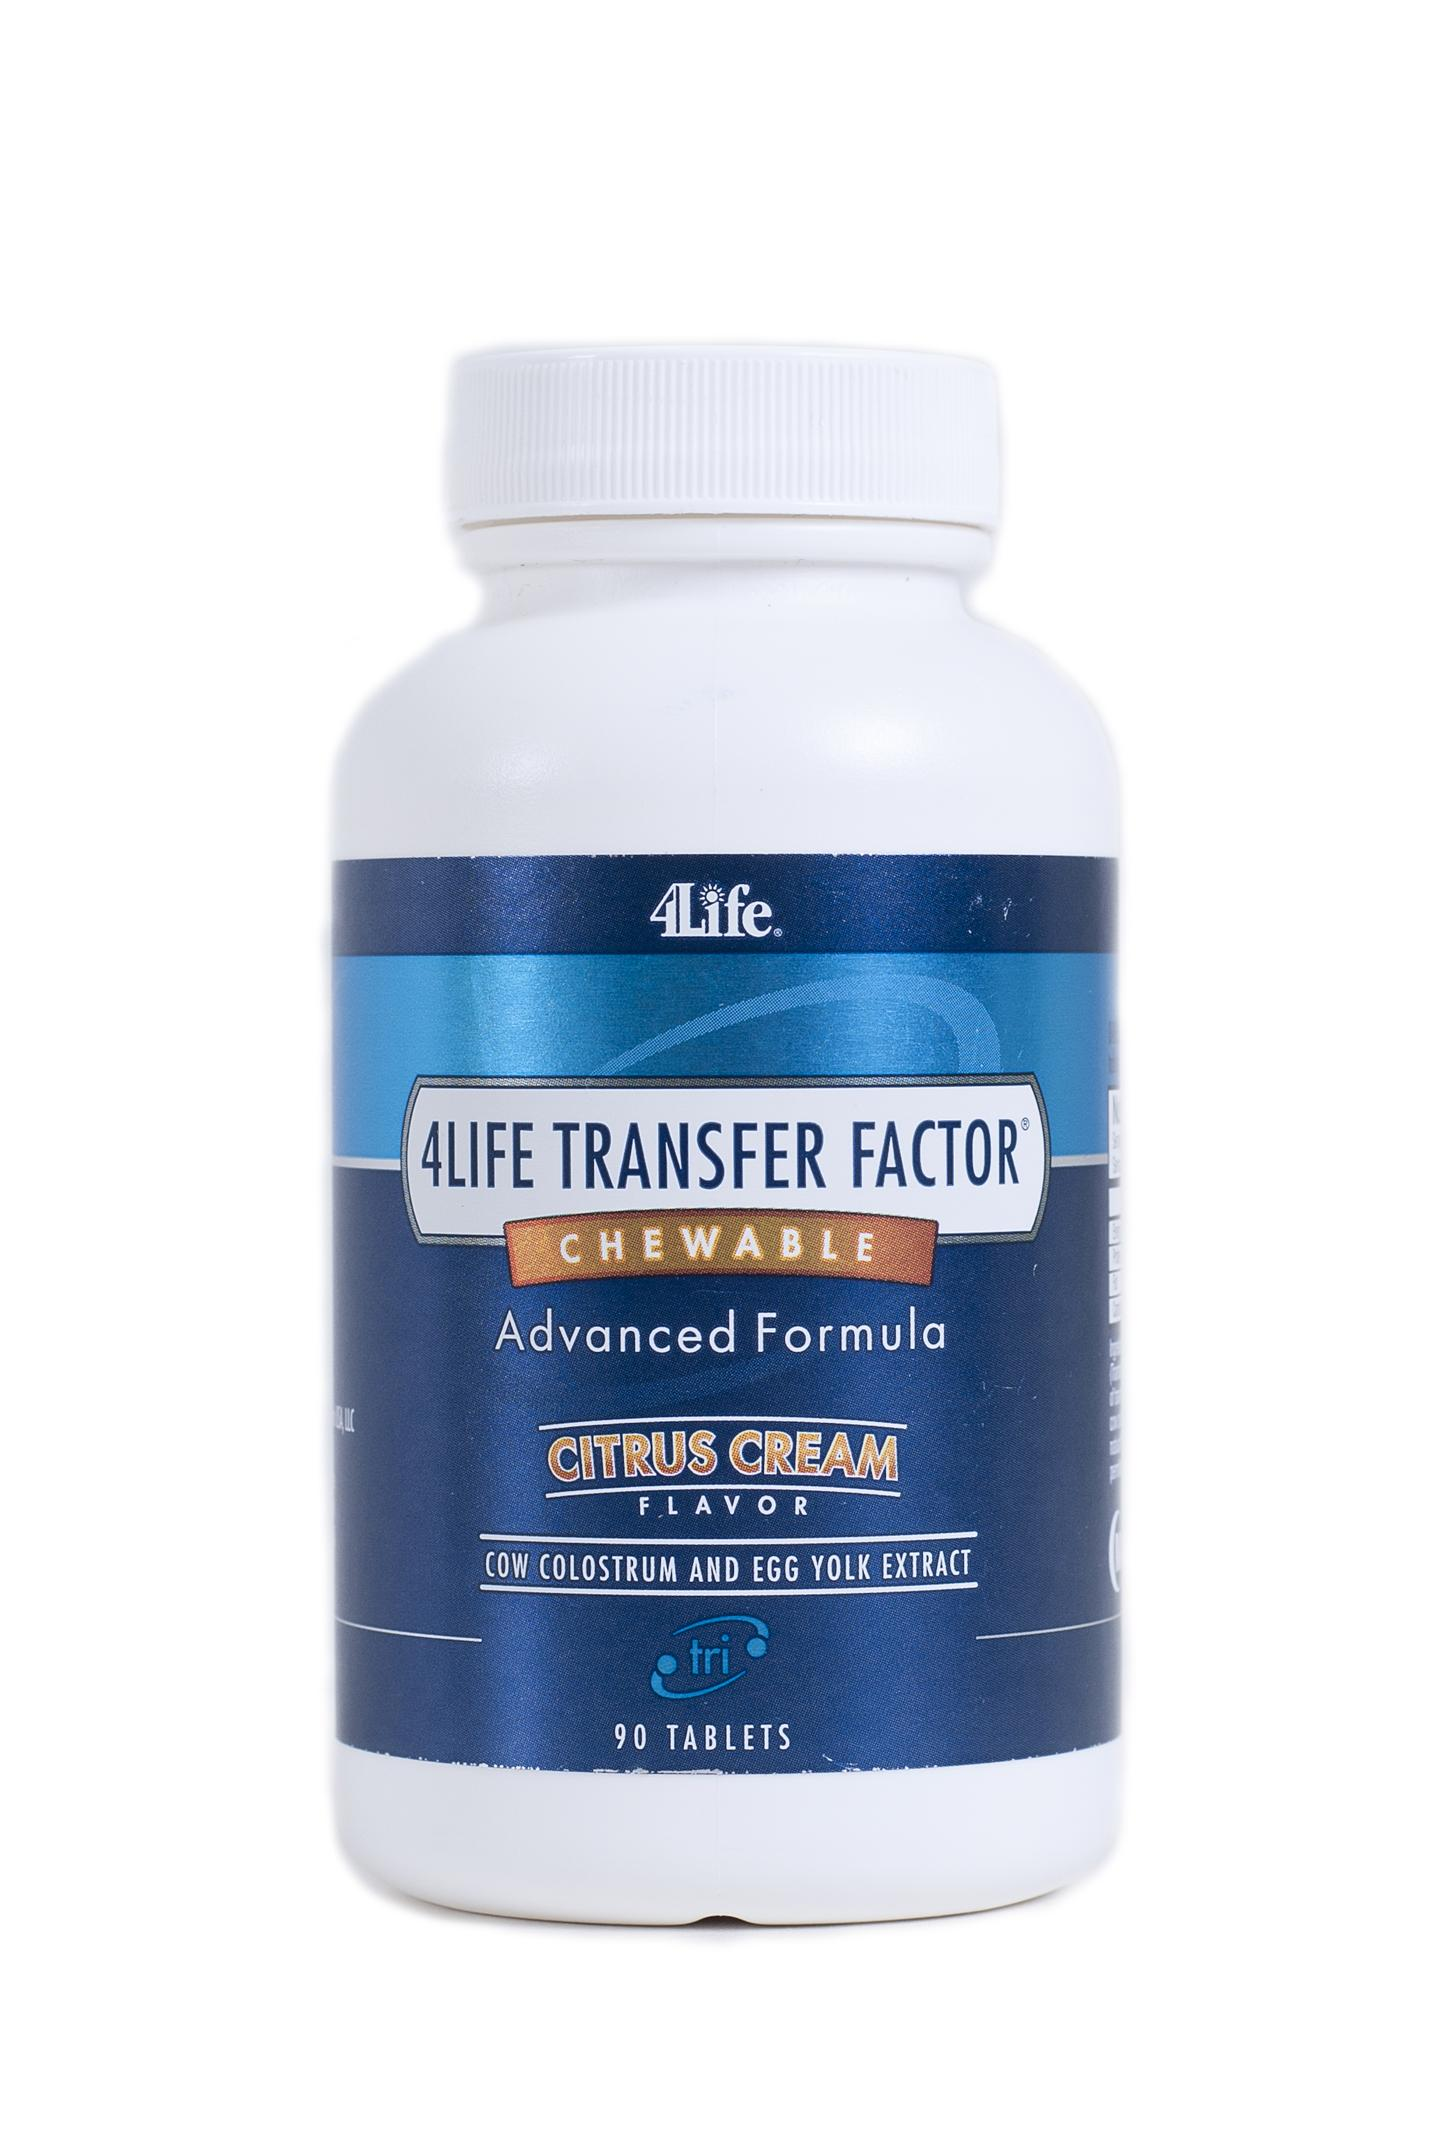 4life-transfer-factor-chewable-citrus-cream-flavor-90-tablets-myfamilycentre-1406-20-MyFamilyCentre@5.jpg